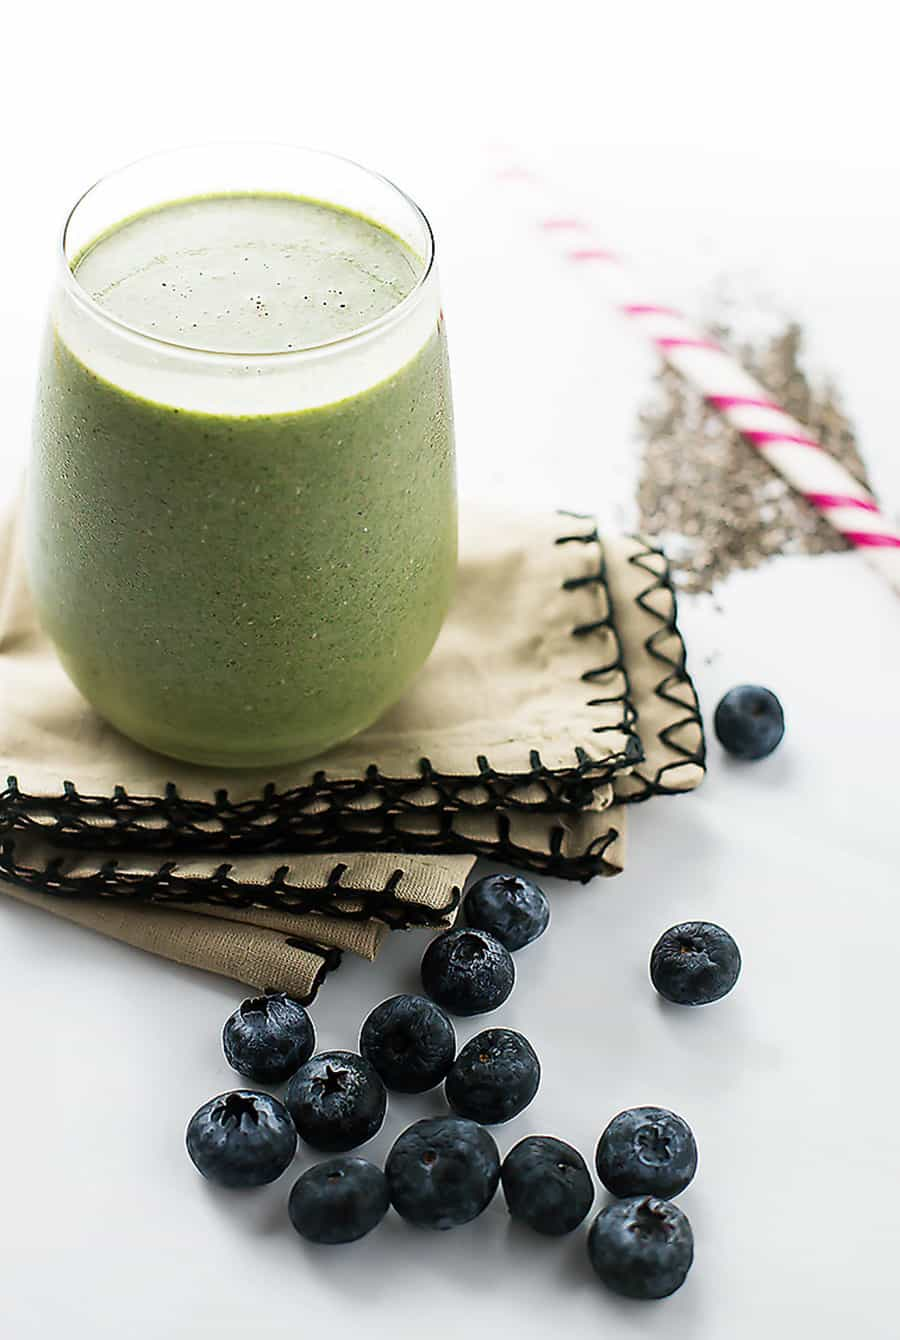 a glass full of a low carb green smoothie on a table with blueberries